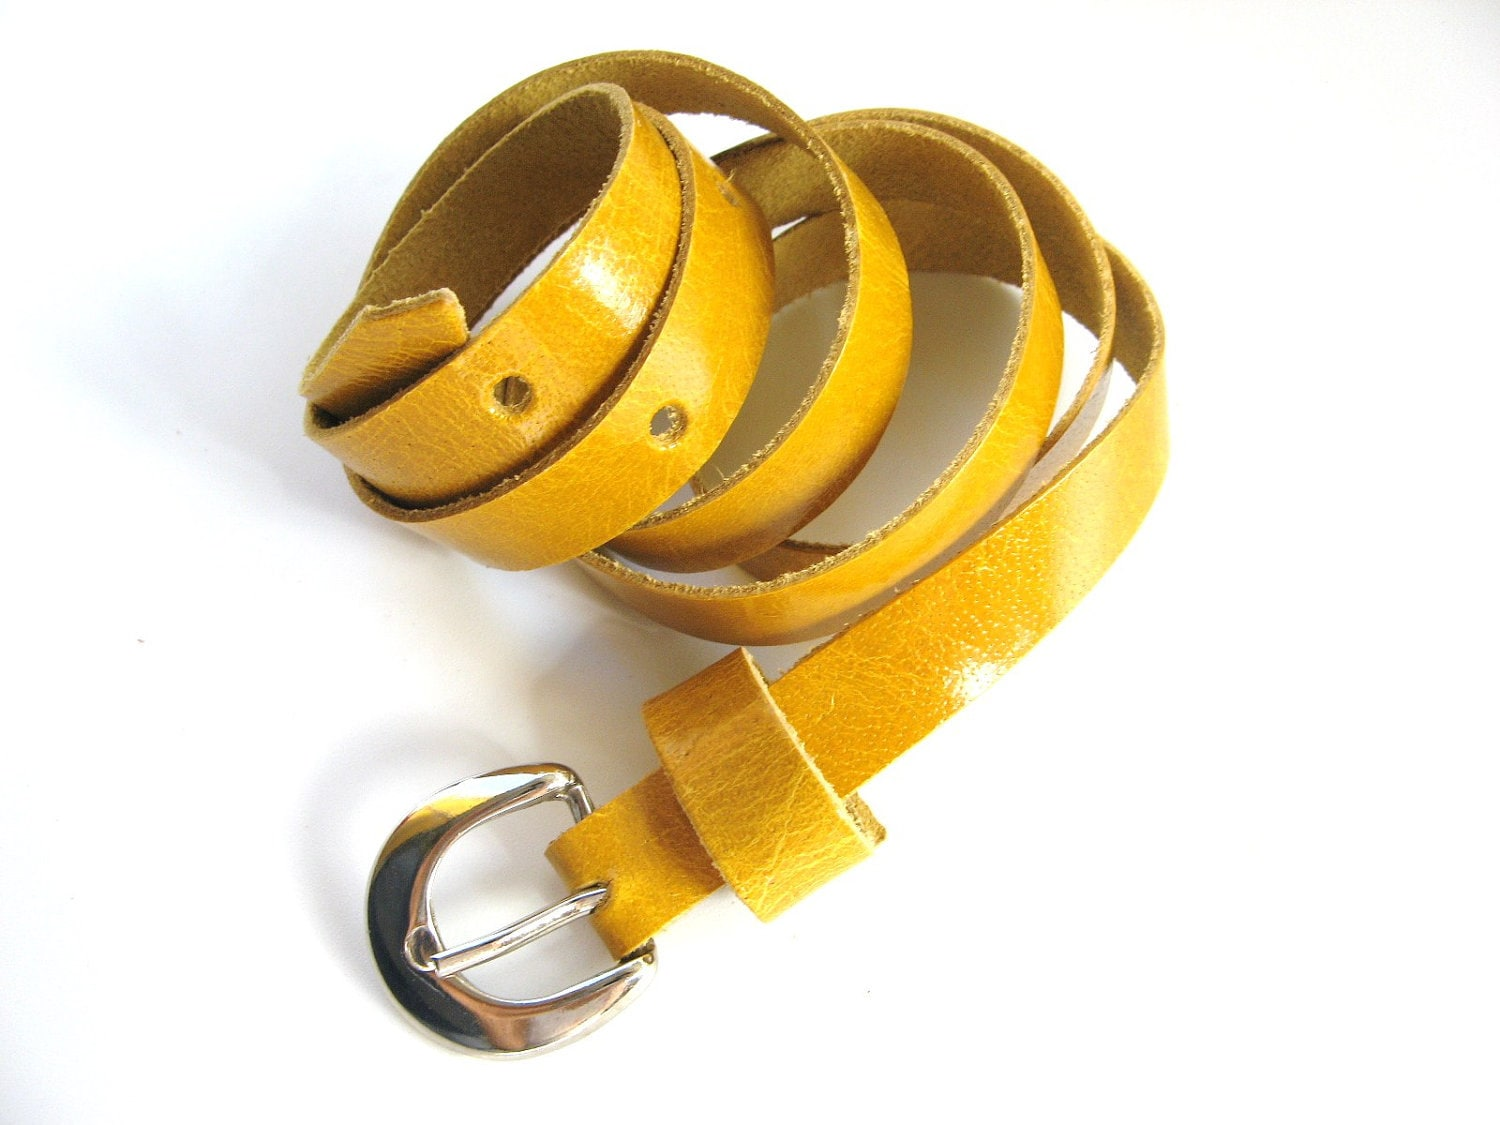 SUPER SKINNY LEATHER Belt - in Big Yellow Taxi -  Free Shipping